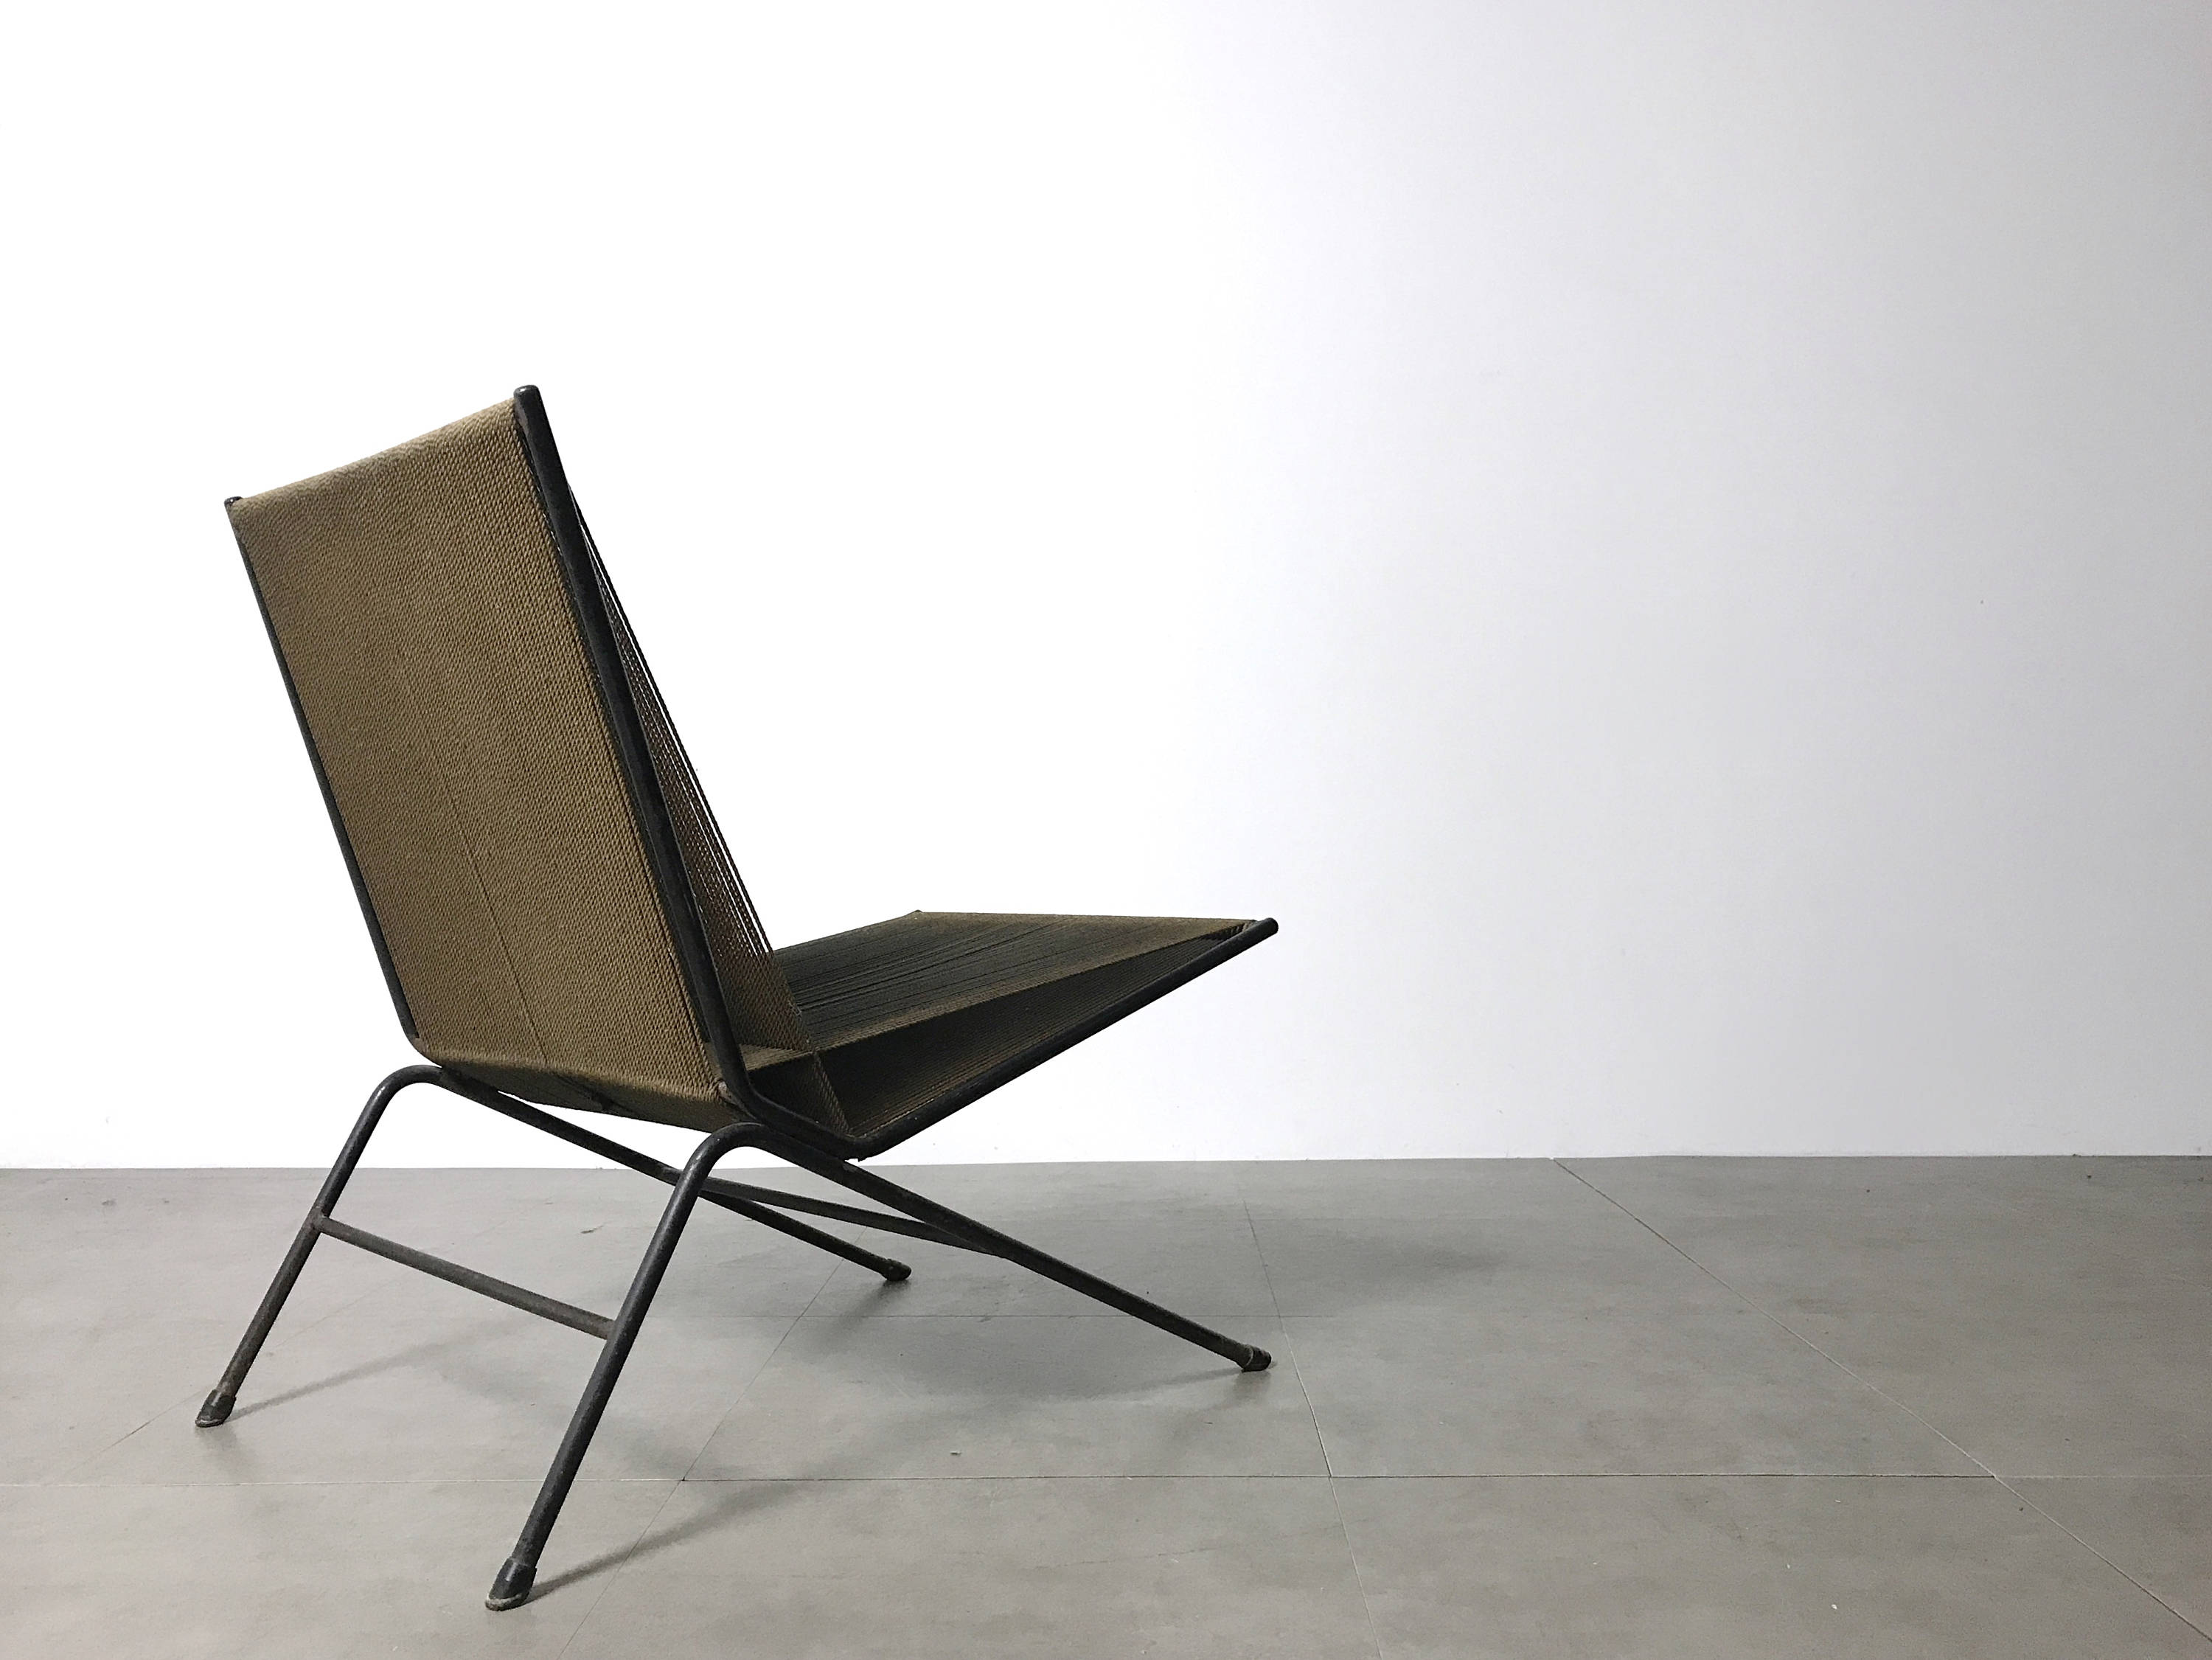 Allan Gould String Lounge Chair & Ottoman 1952 - The Exchange Int